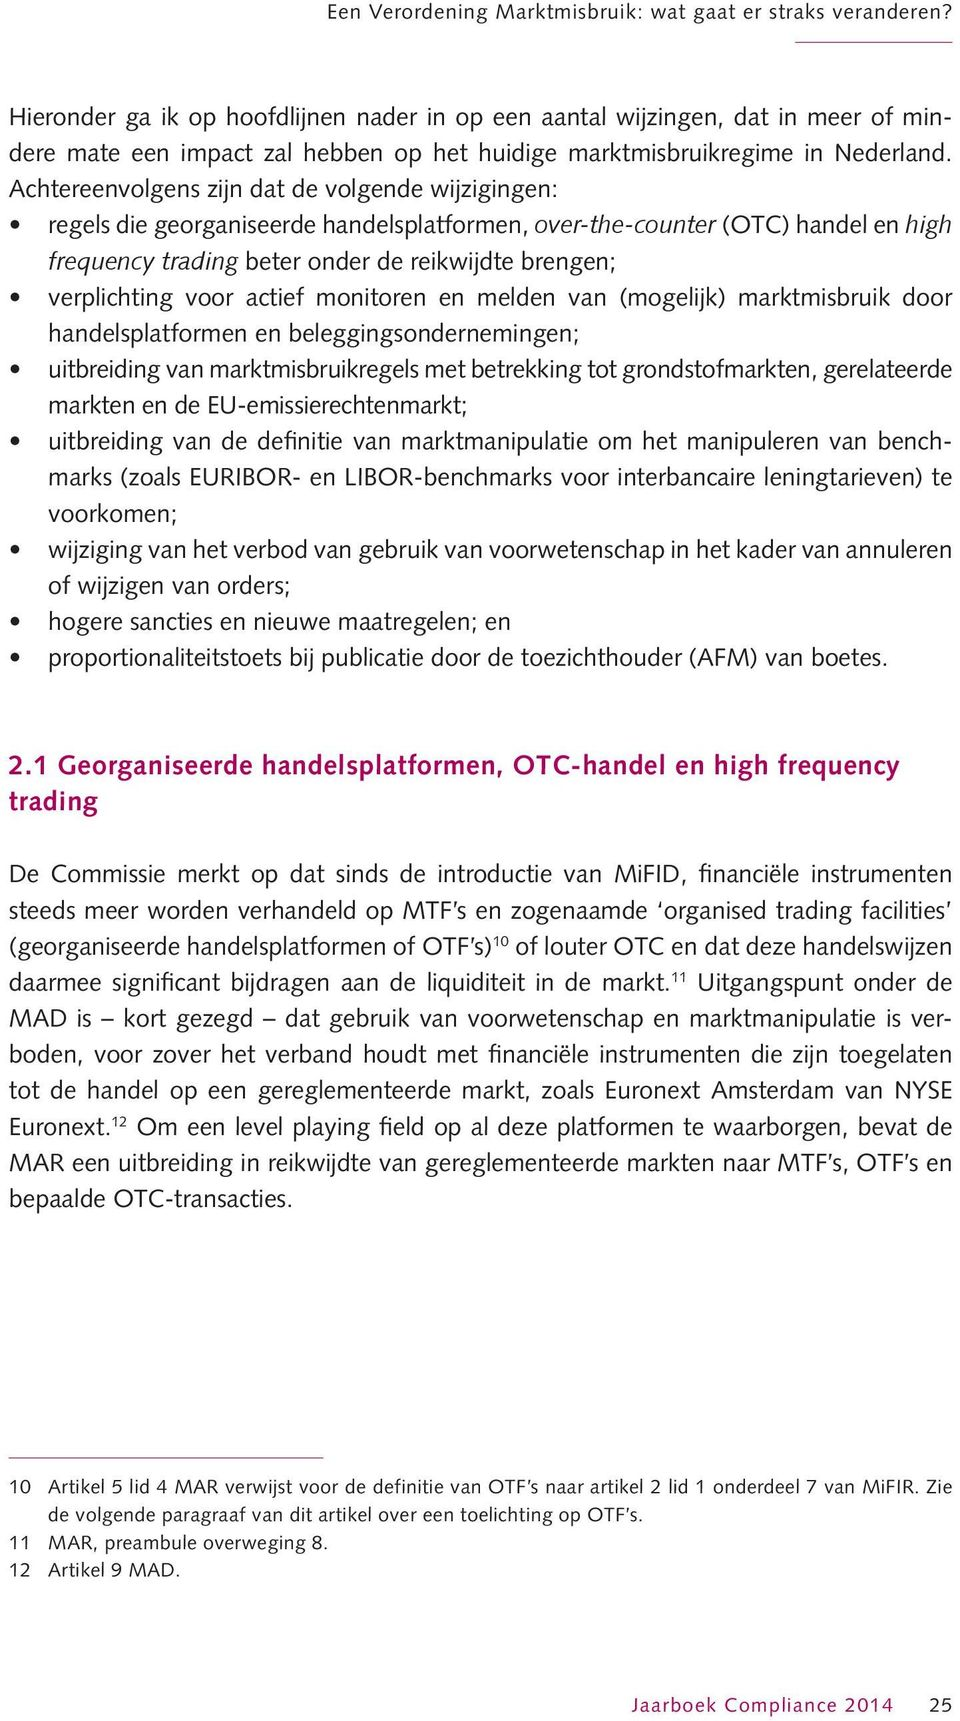 Achtereenvolgens zijn dat de volgende wijzigingen: regels die georganiseerde handelsplatformen, over-the-counter (OTC) handel en high frequency trading beter onder de reikwijdte brengen; verplichting